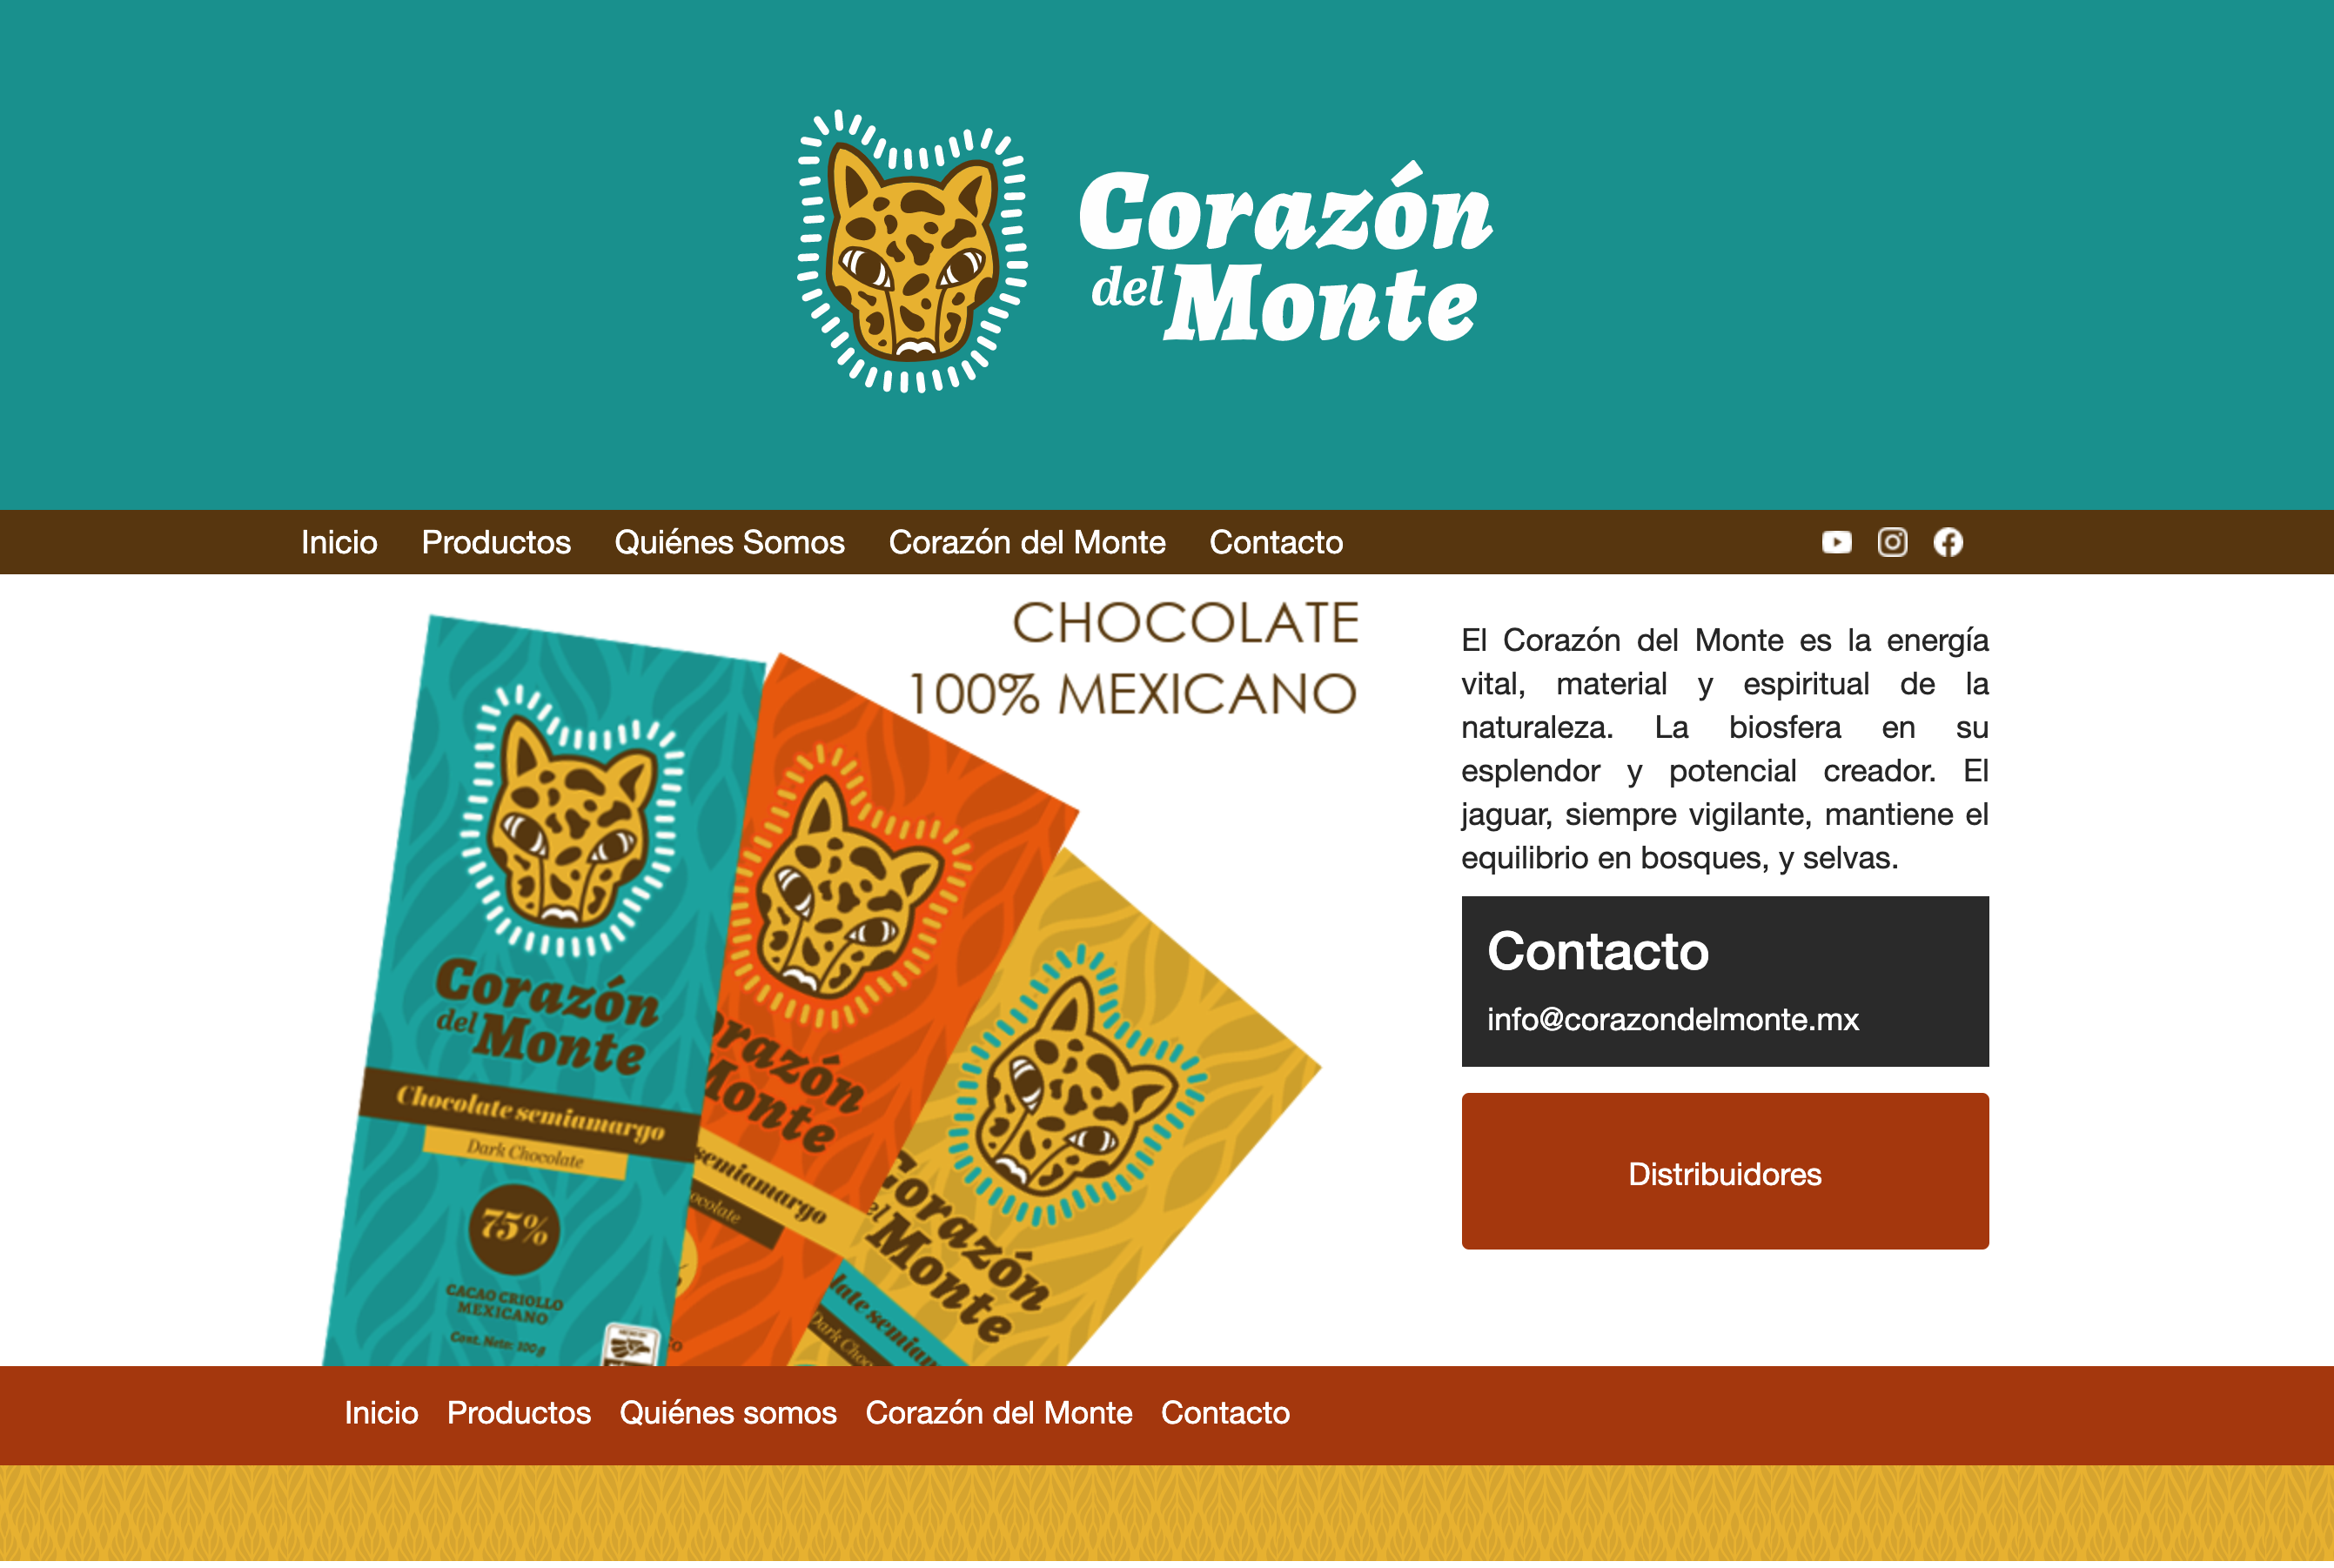 corazon del monte, Chocolateria.